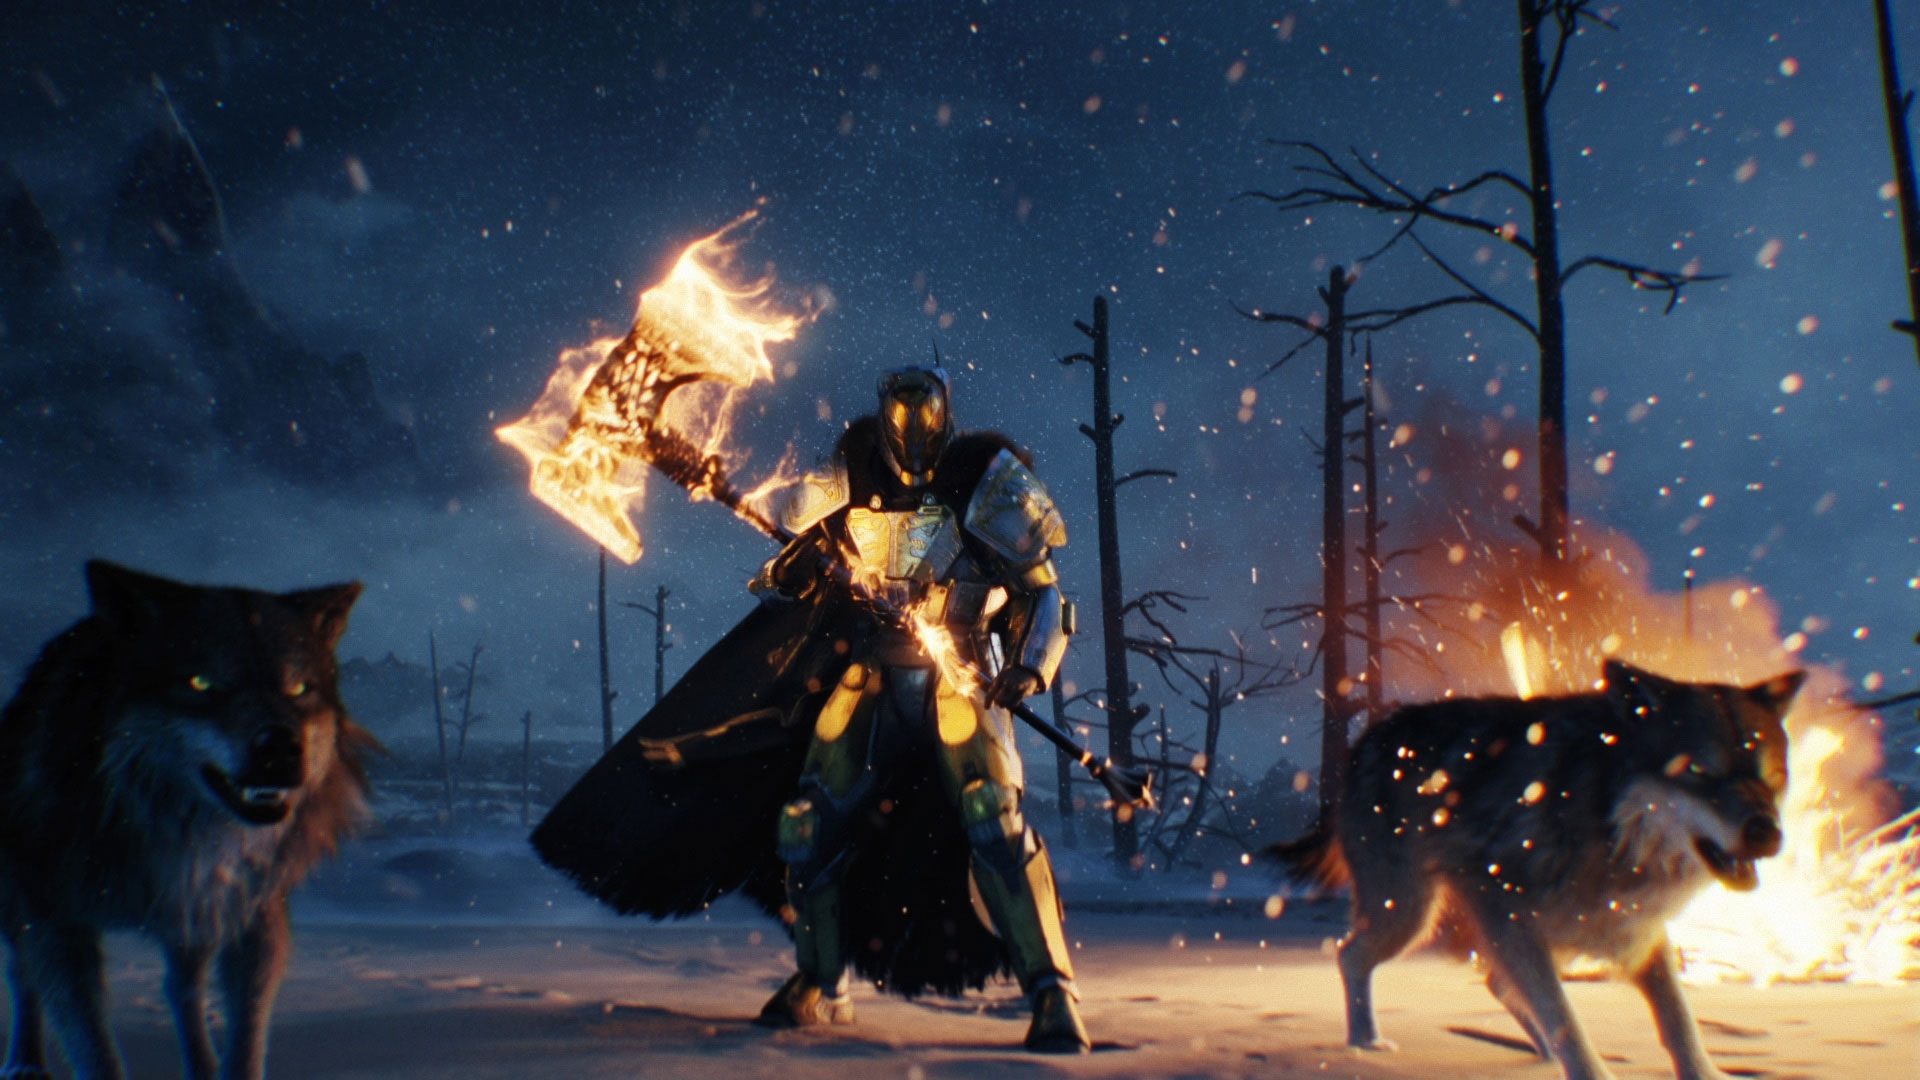 Bungie: Shadowkeep will be 'Rise of Iron Plus'-sized, but can't grow infinitely